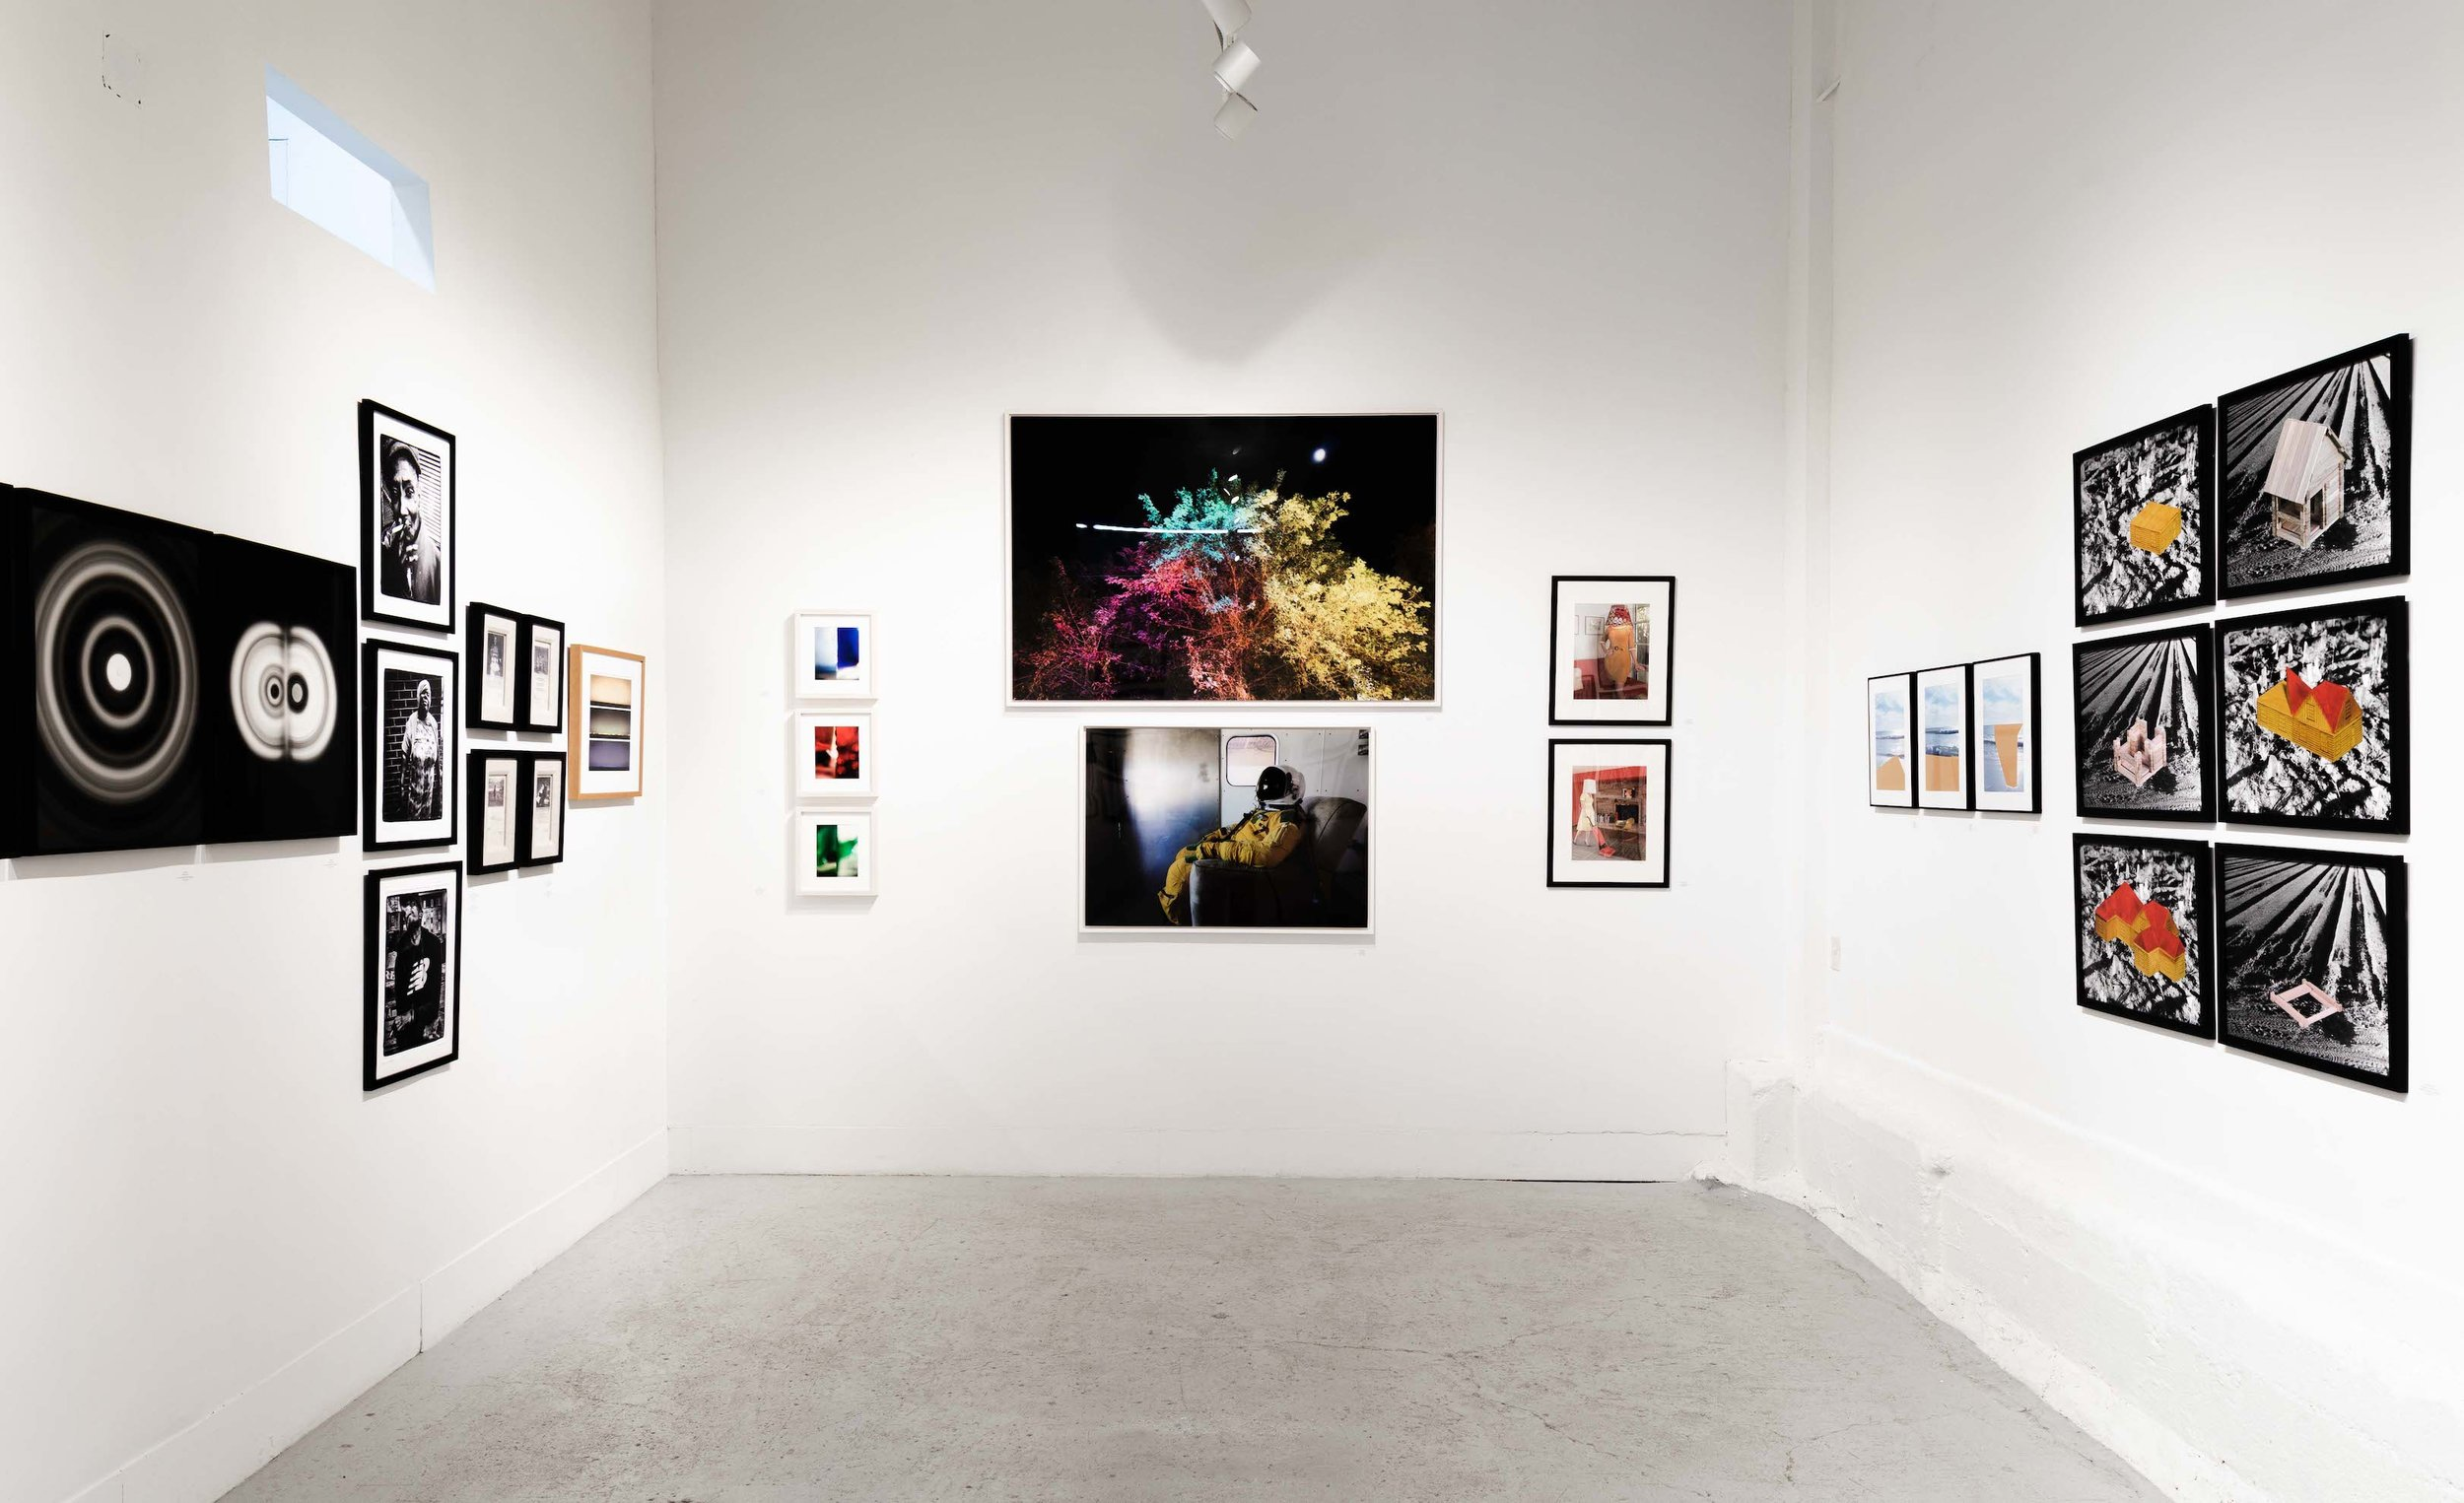 Installation view. Courtesy of Site: Brooklyn Gallery.